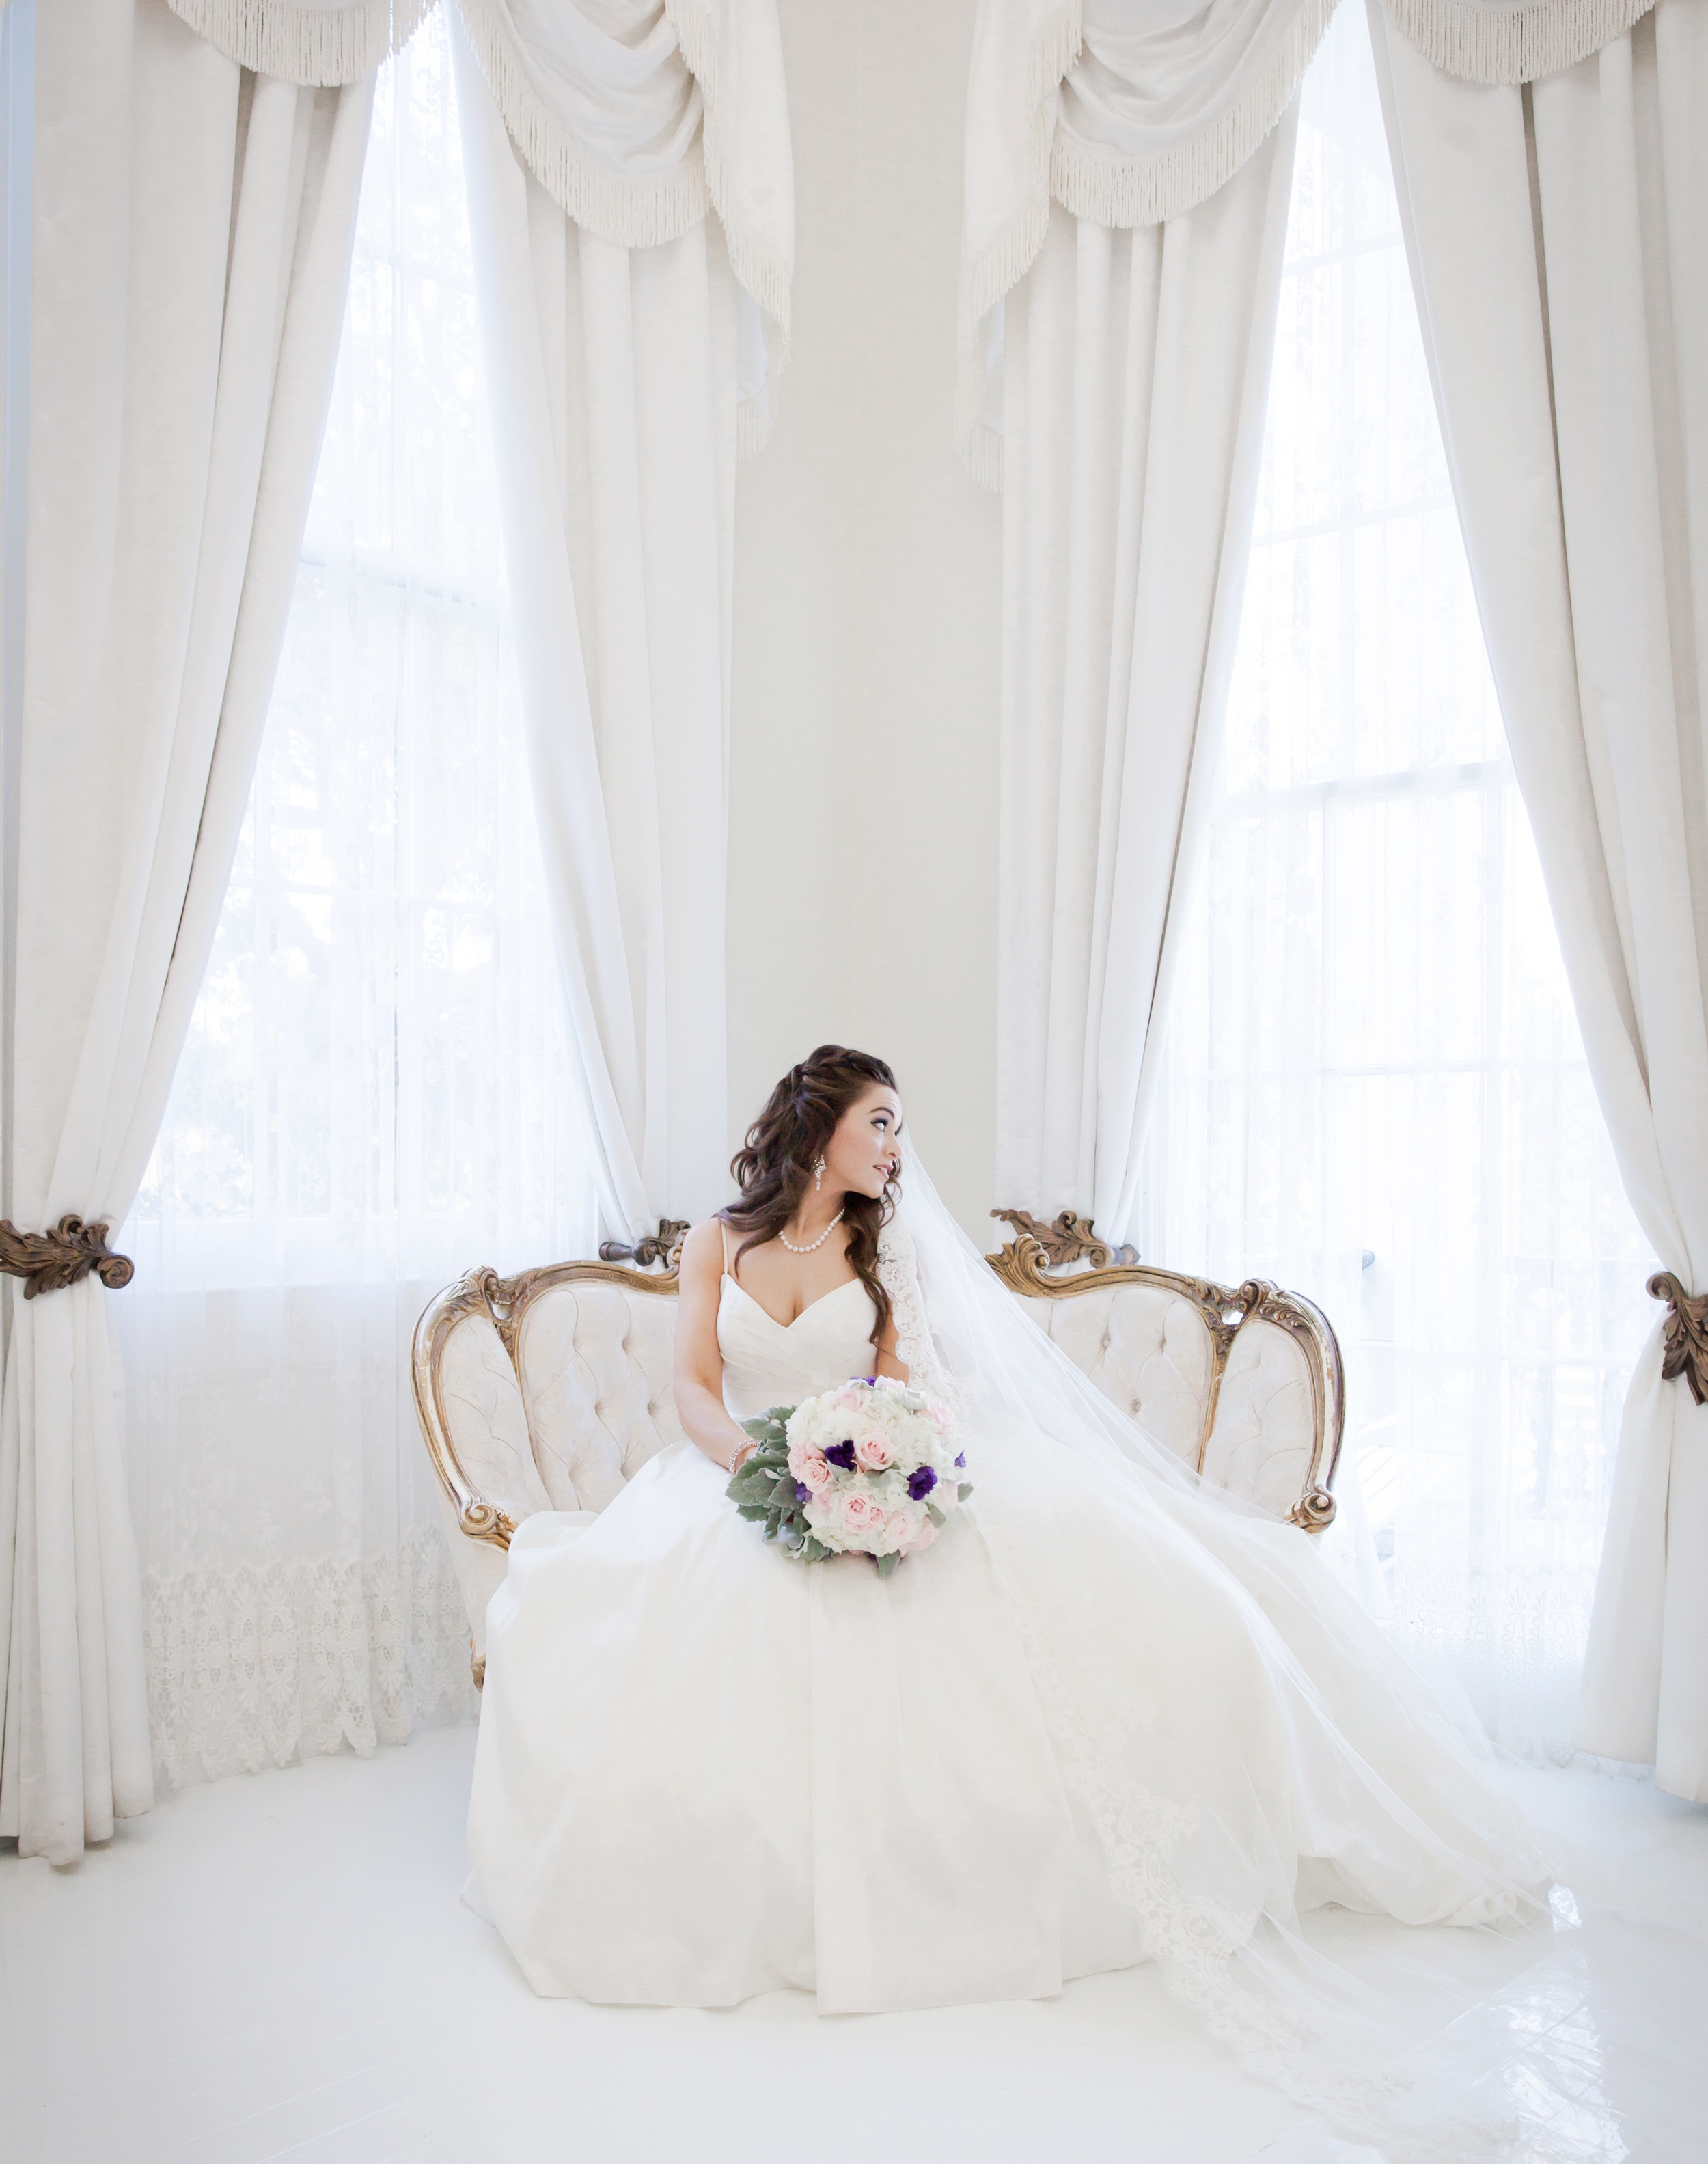 The White room st Nottoway Plantation is a perfect setting for #stunning imagery of your bride in all natural light